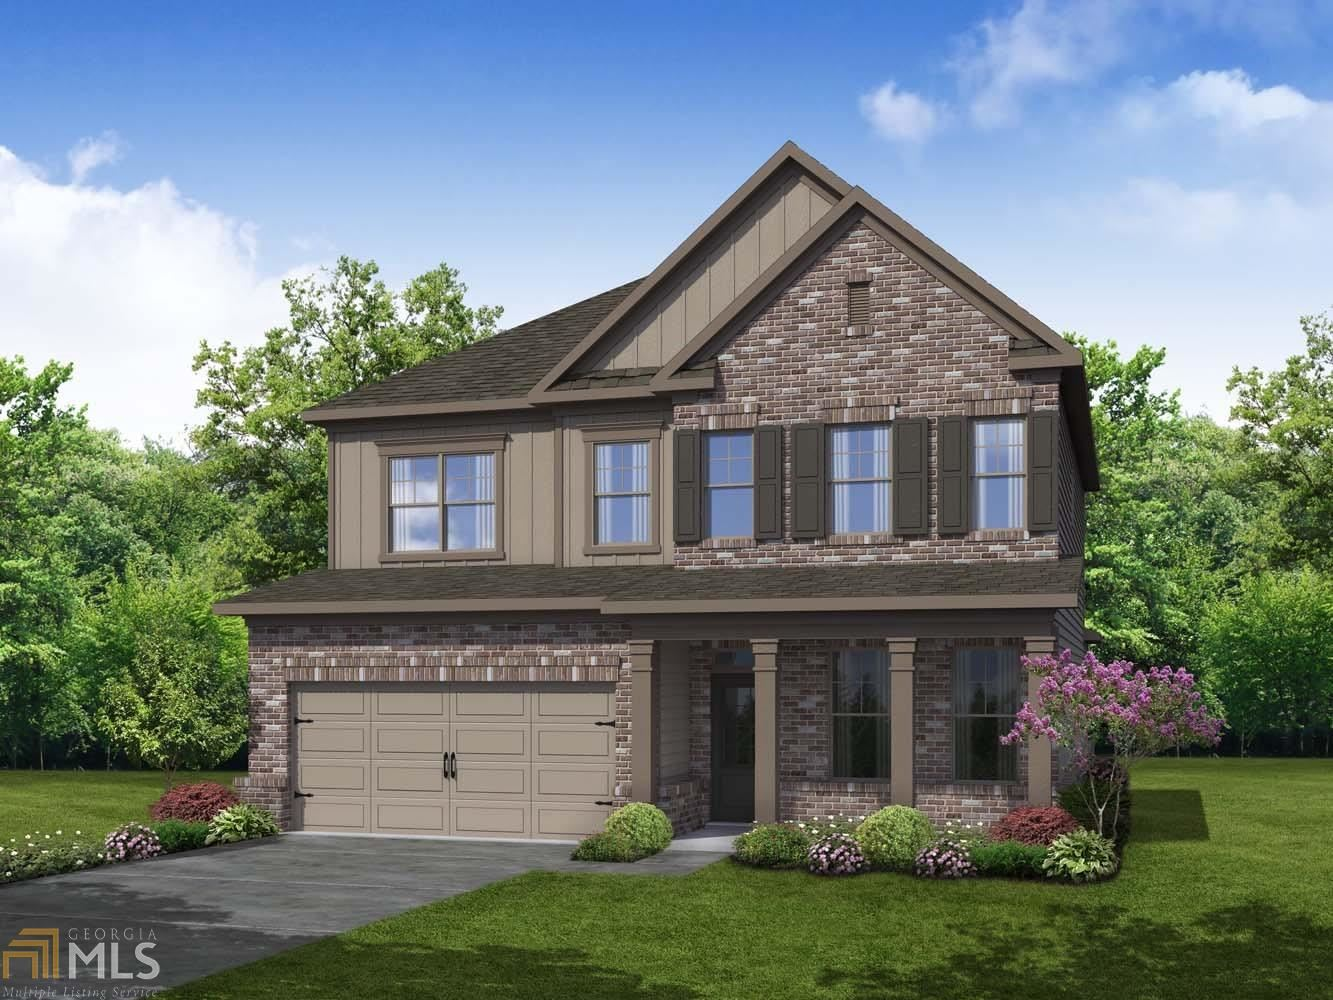 4373 Birch Meadow Trl, Gainesville, GA 30504 - MLS#: 8828242